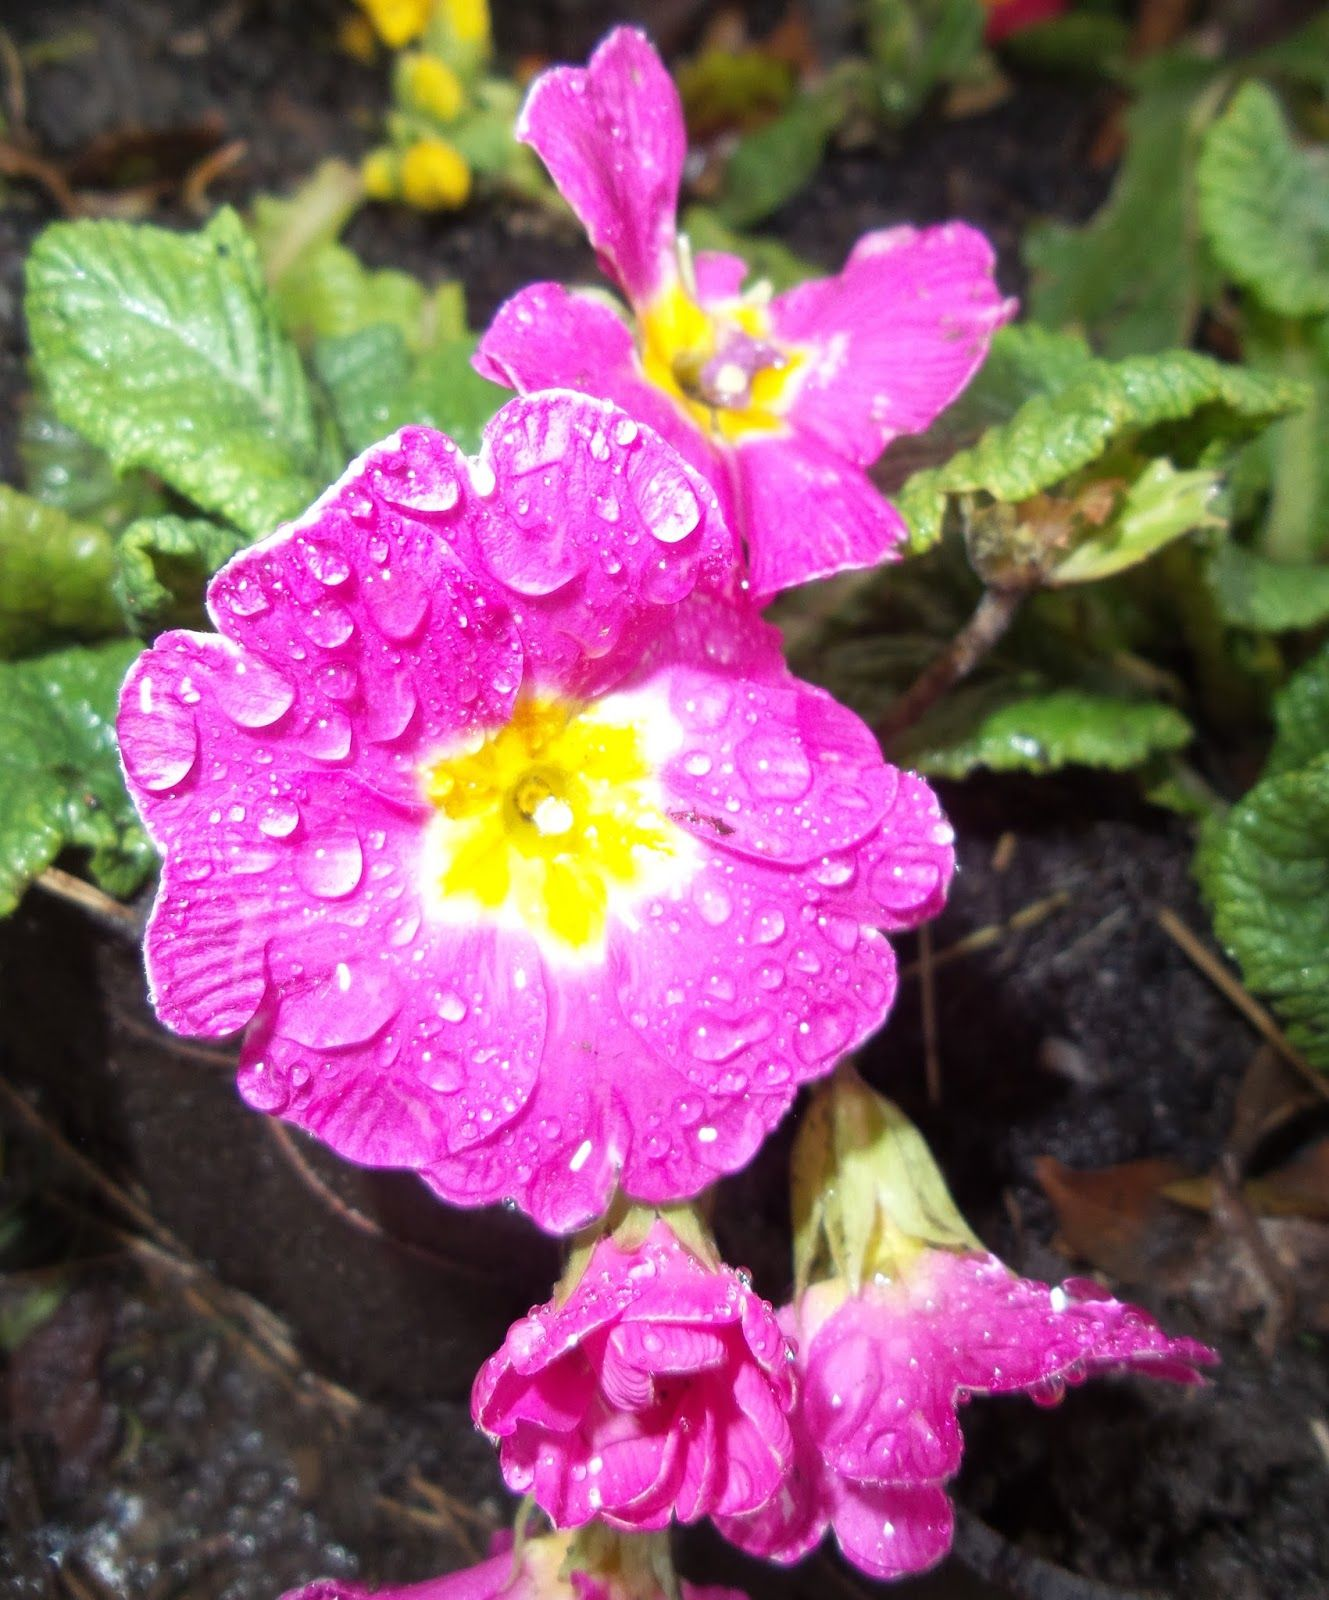 Photo Challenge 30 Bright Pink And Yellow Primrose Perennial Spring